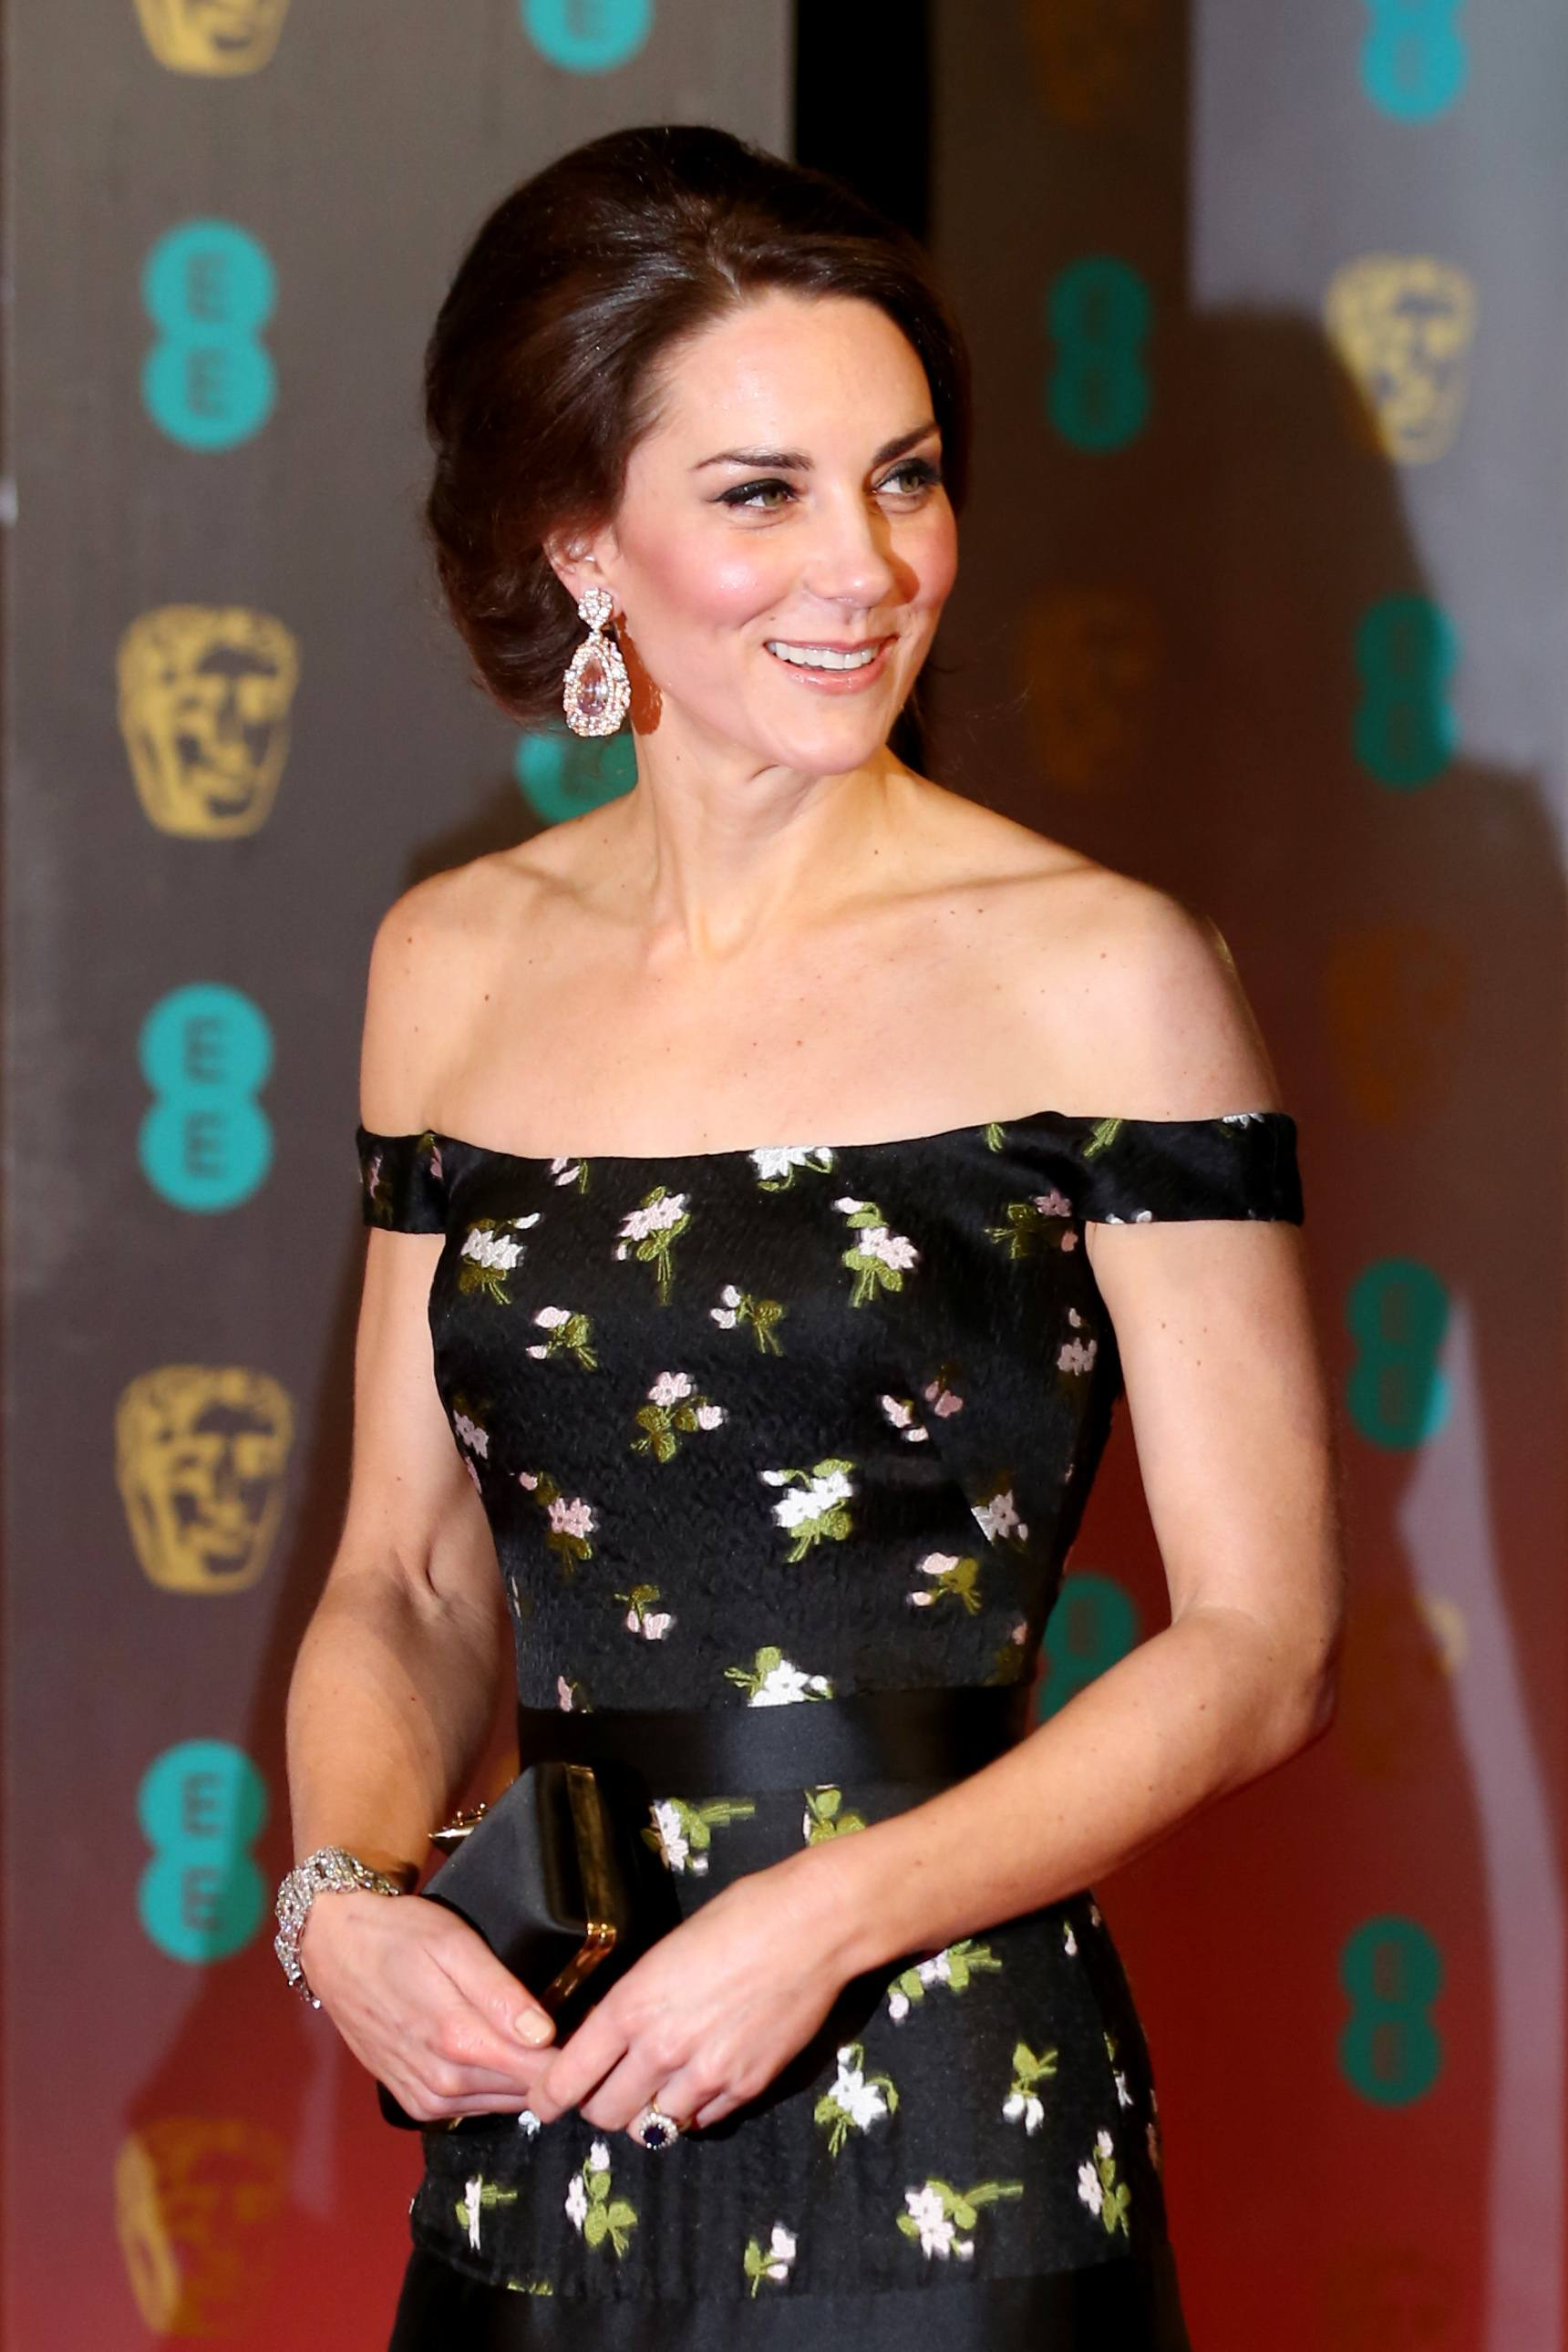 Kate Middleton wearing a floral strapless gown with her hair in an updo